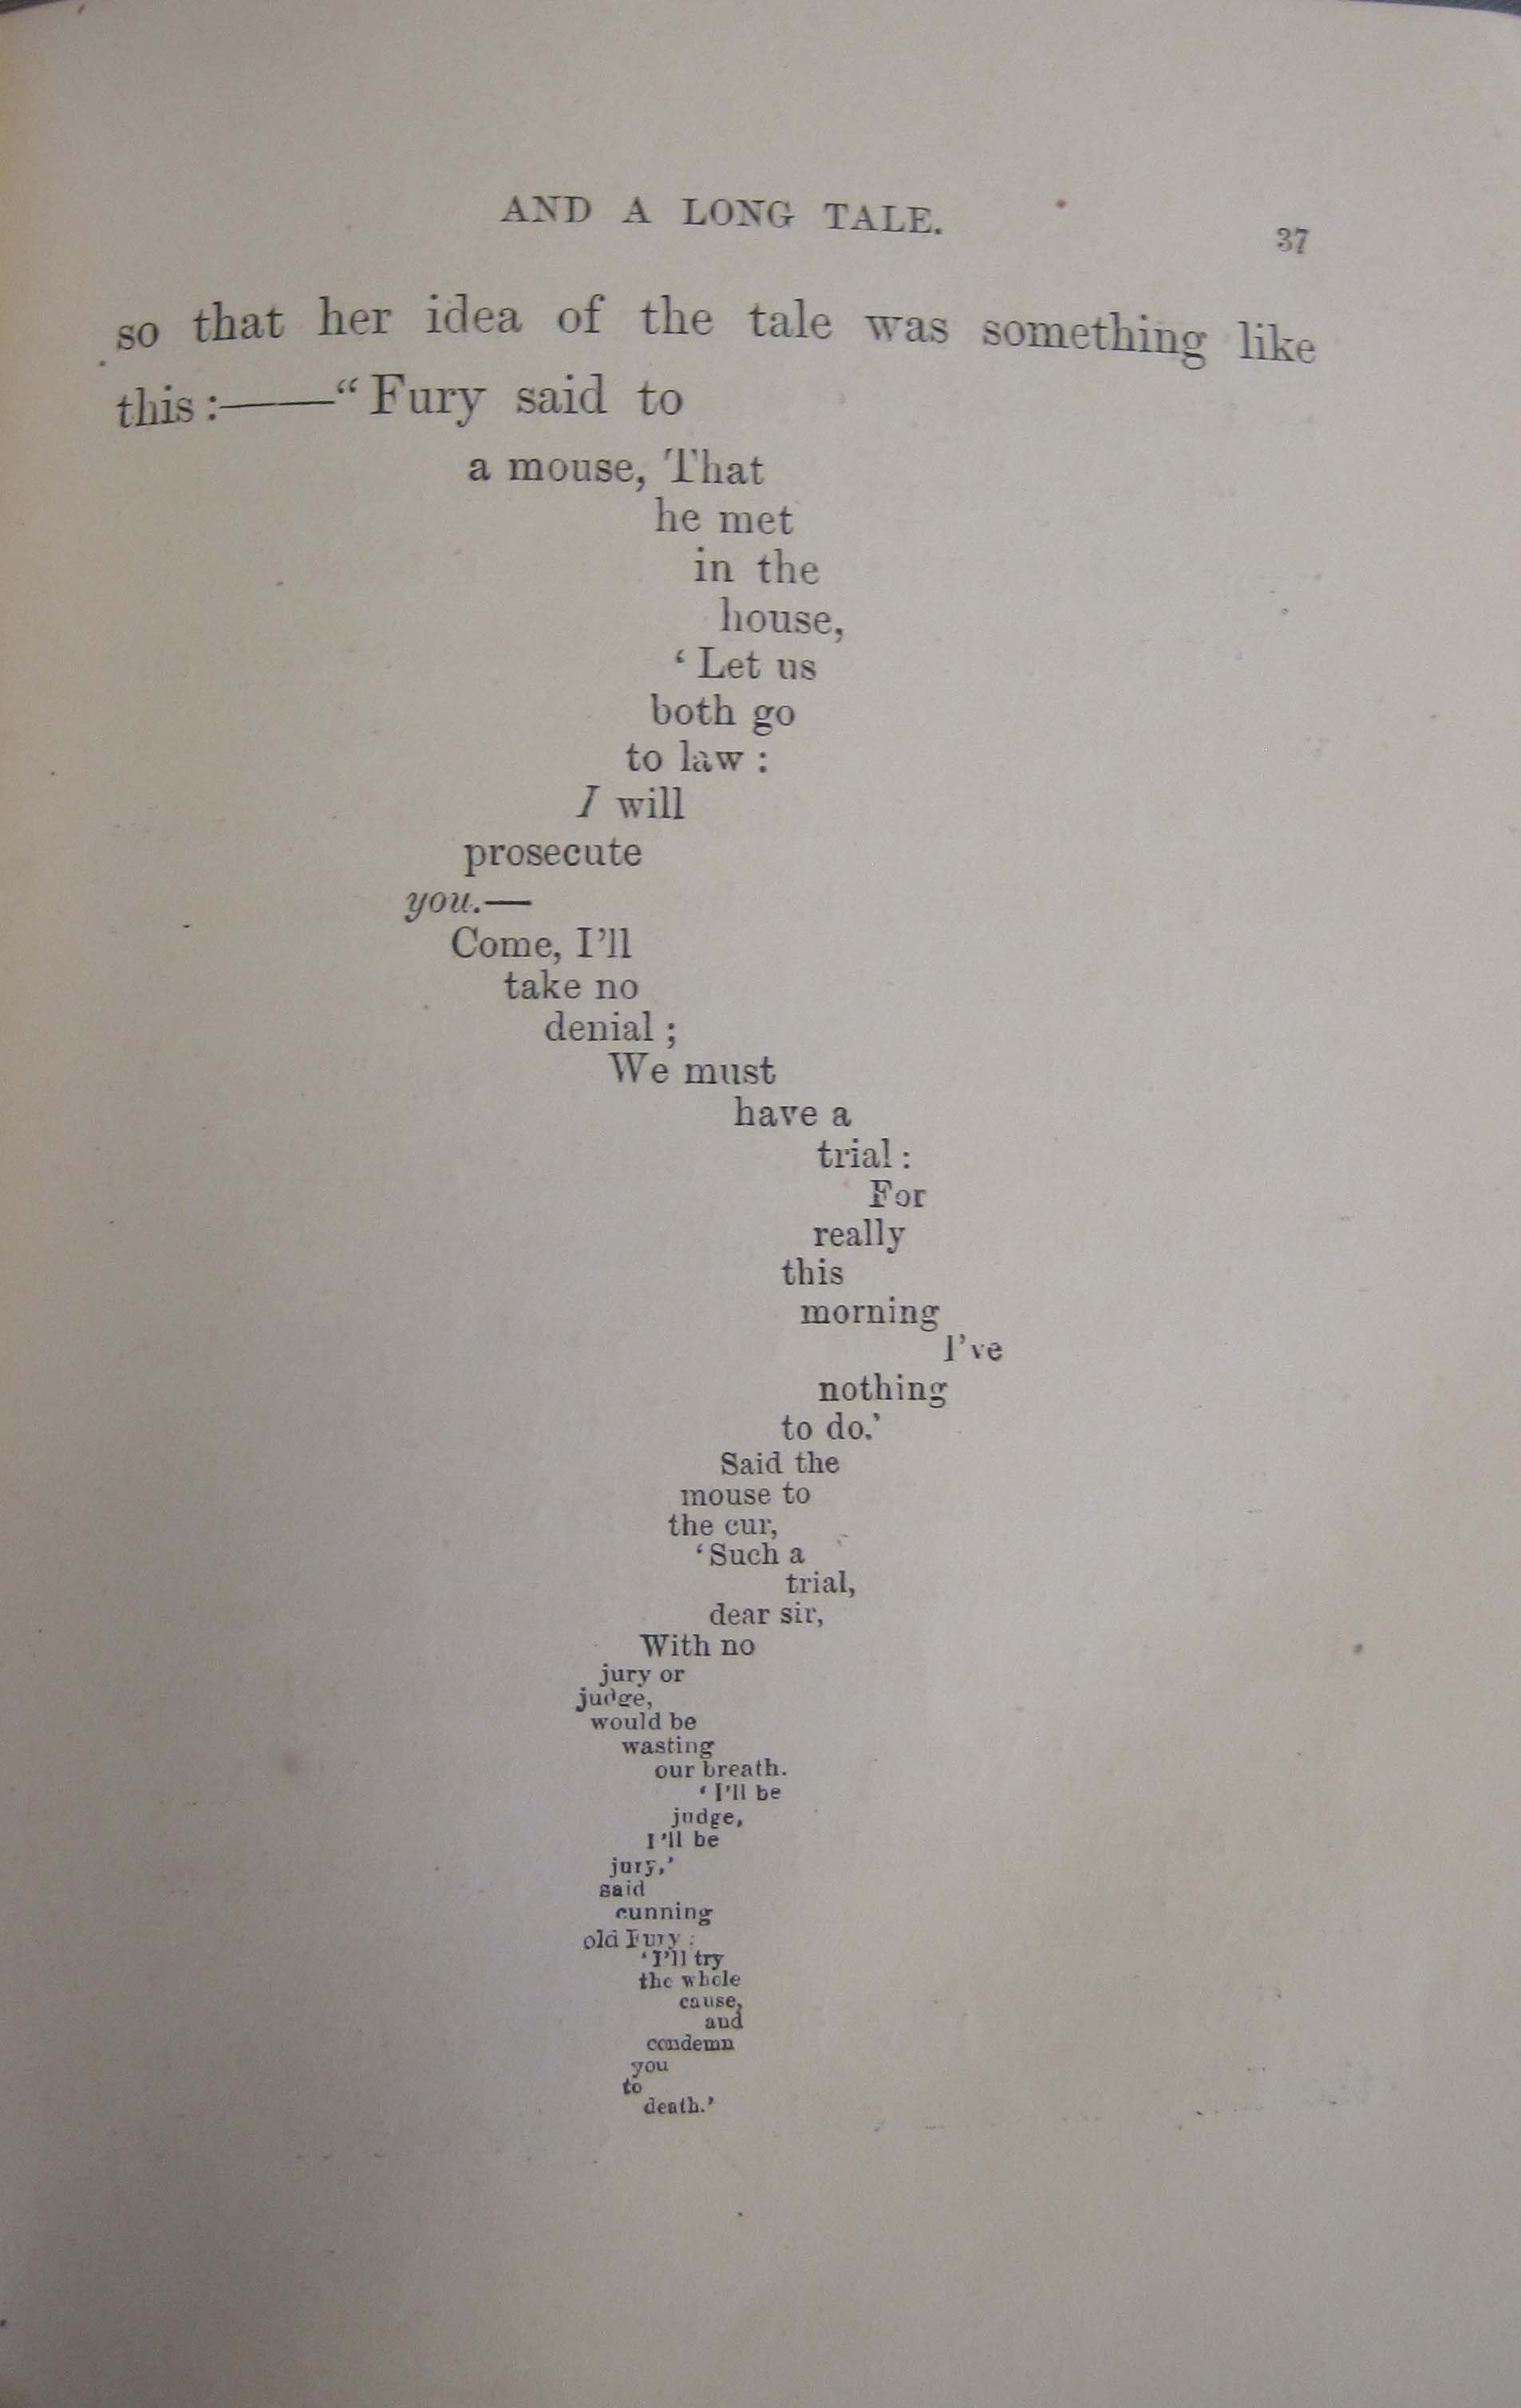 "Standard red-cloth Alice's Adventures in Wonderland, 1865 (1876 reprint shown here) (interior page). This is the mouse's tale/tail, an early example of concrete poetry. Its typography echoes that of the hand-drawn tail that Carroll included in his gift manuscript to Alice Liddell. The editorial content and typography of the tale evolved over the course of the Carroll-directed Victorian editions (and posthumous editions) of Wonderland. It was left out of The Nursery ""Alice""."